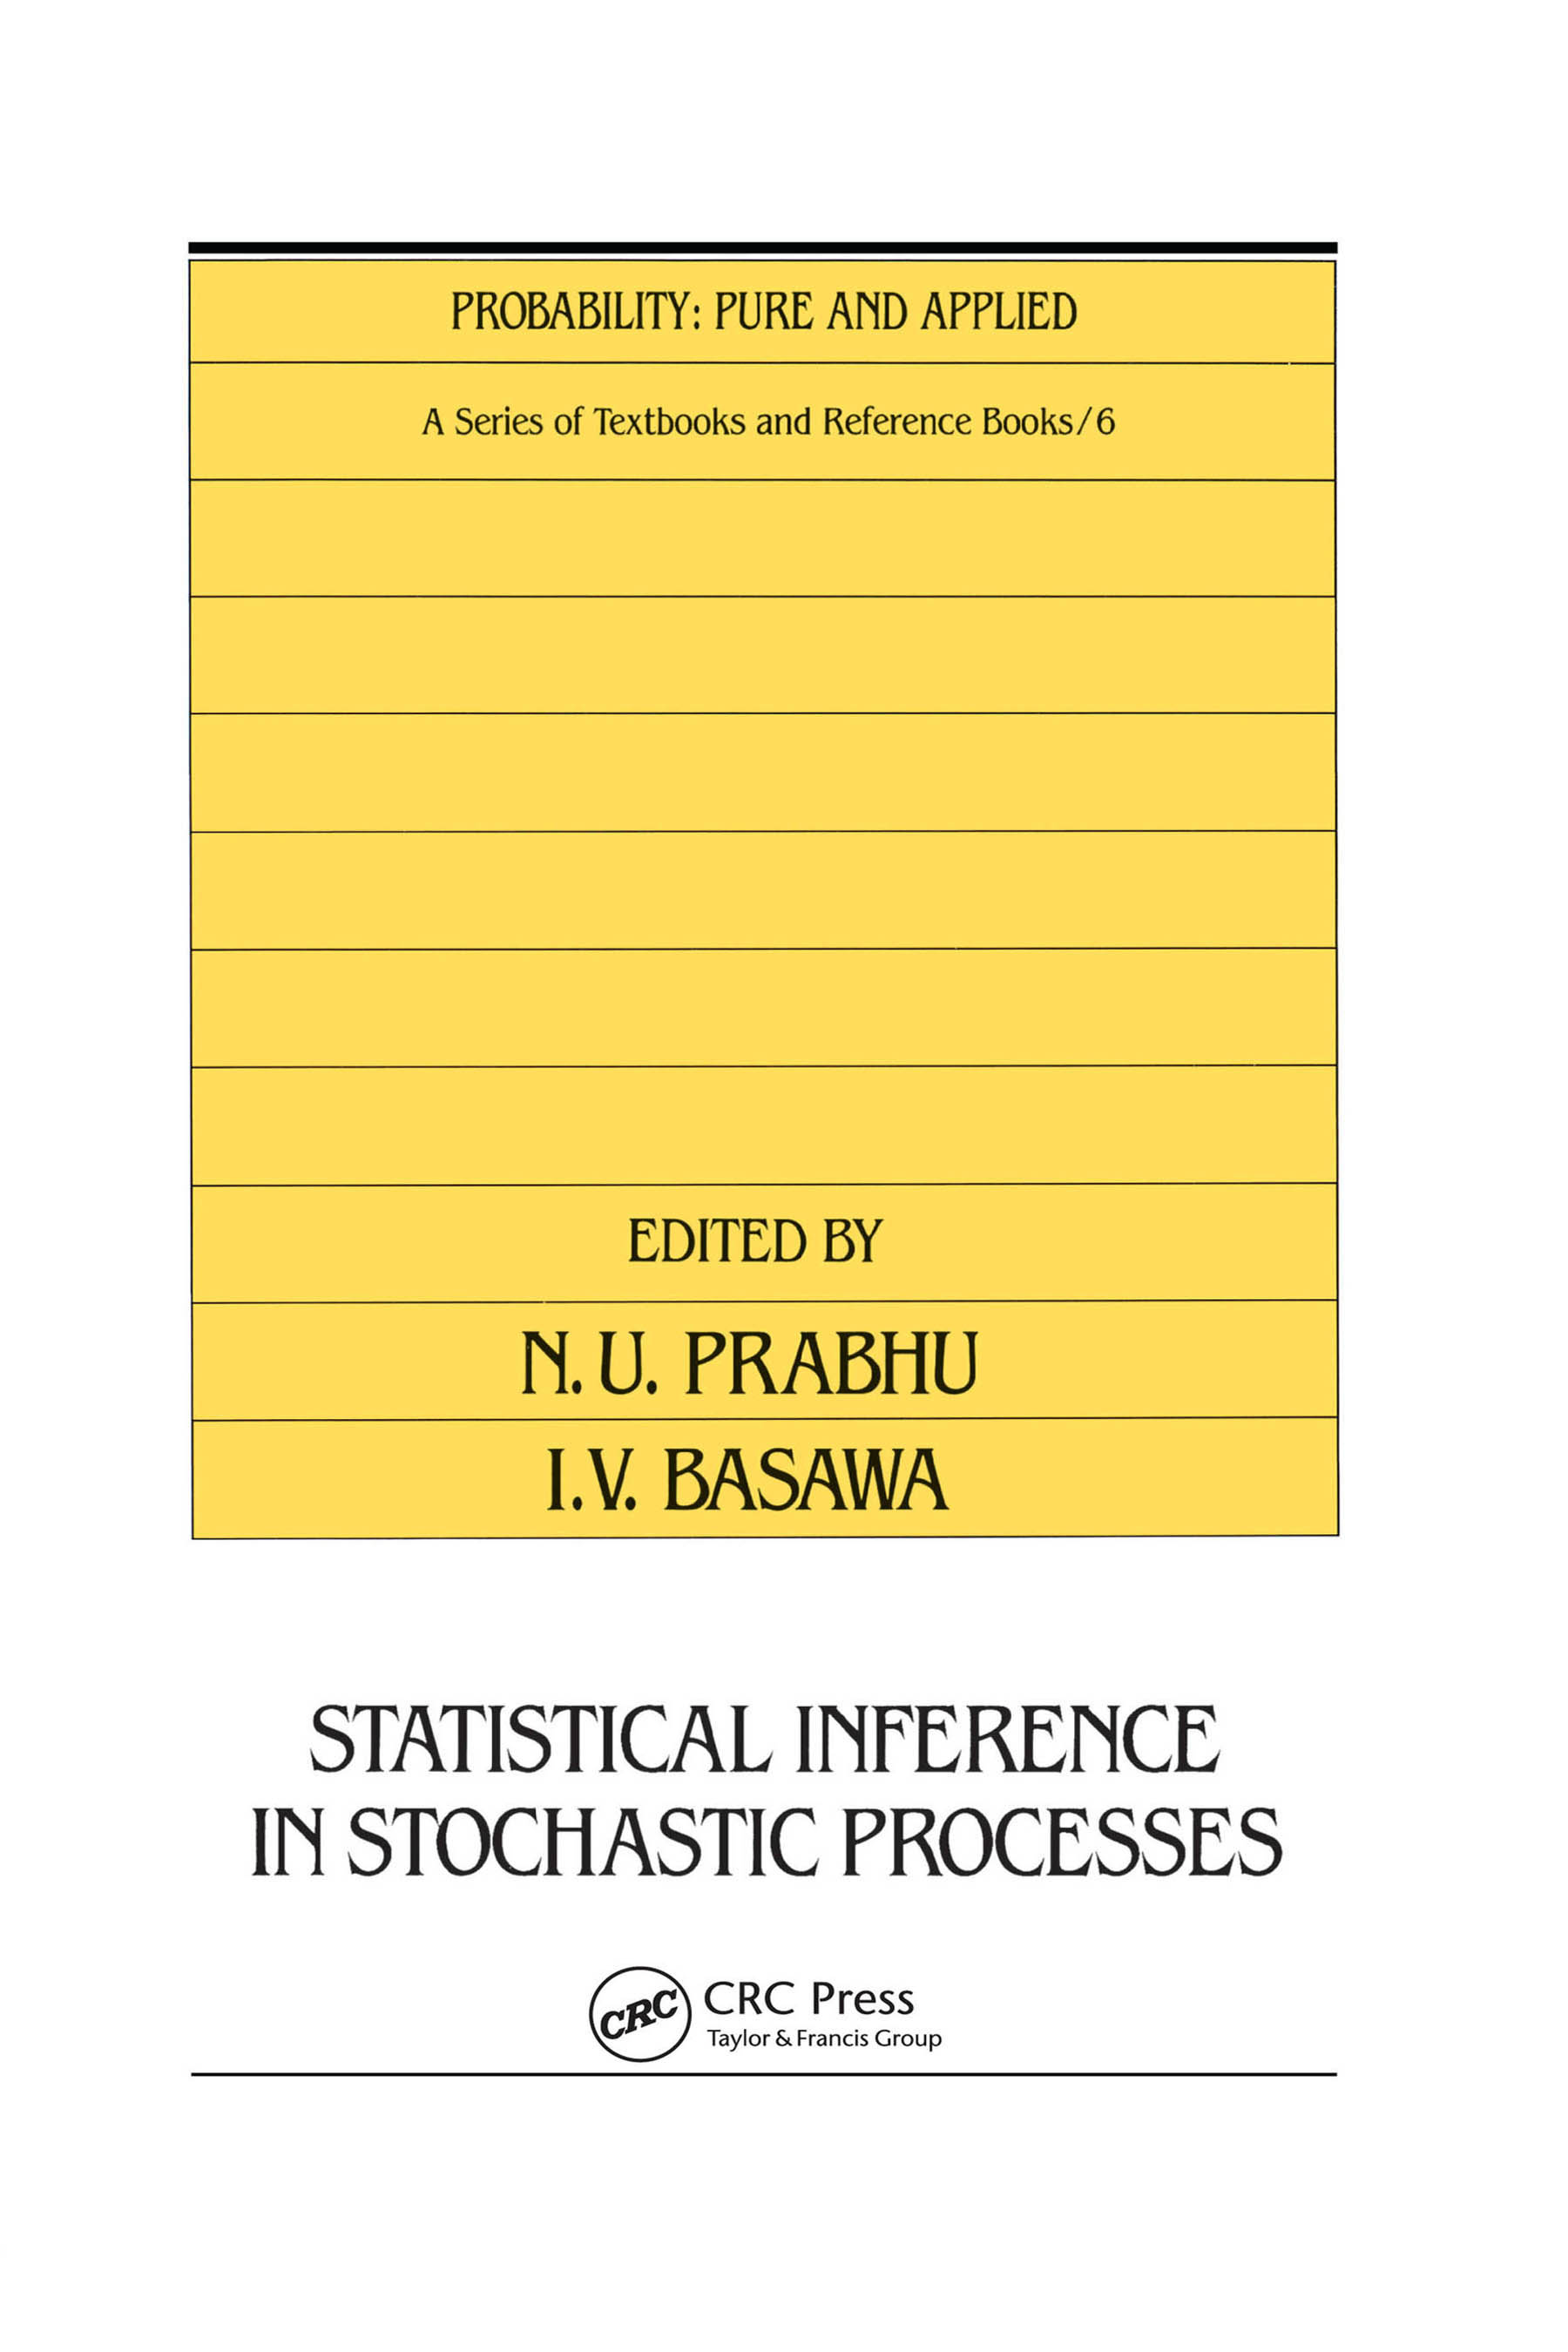 Nonparametric Estimation of Trends in Linear Stochastic Systems